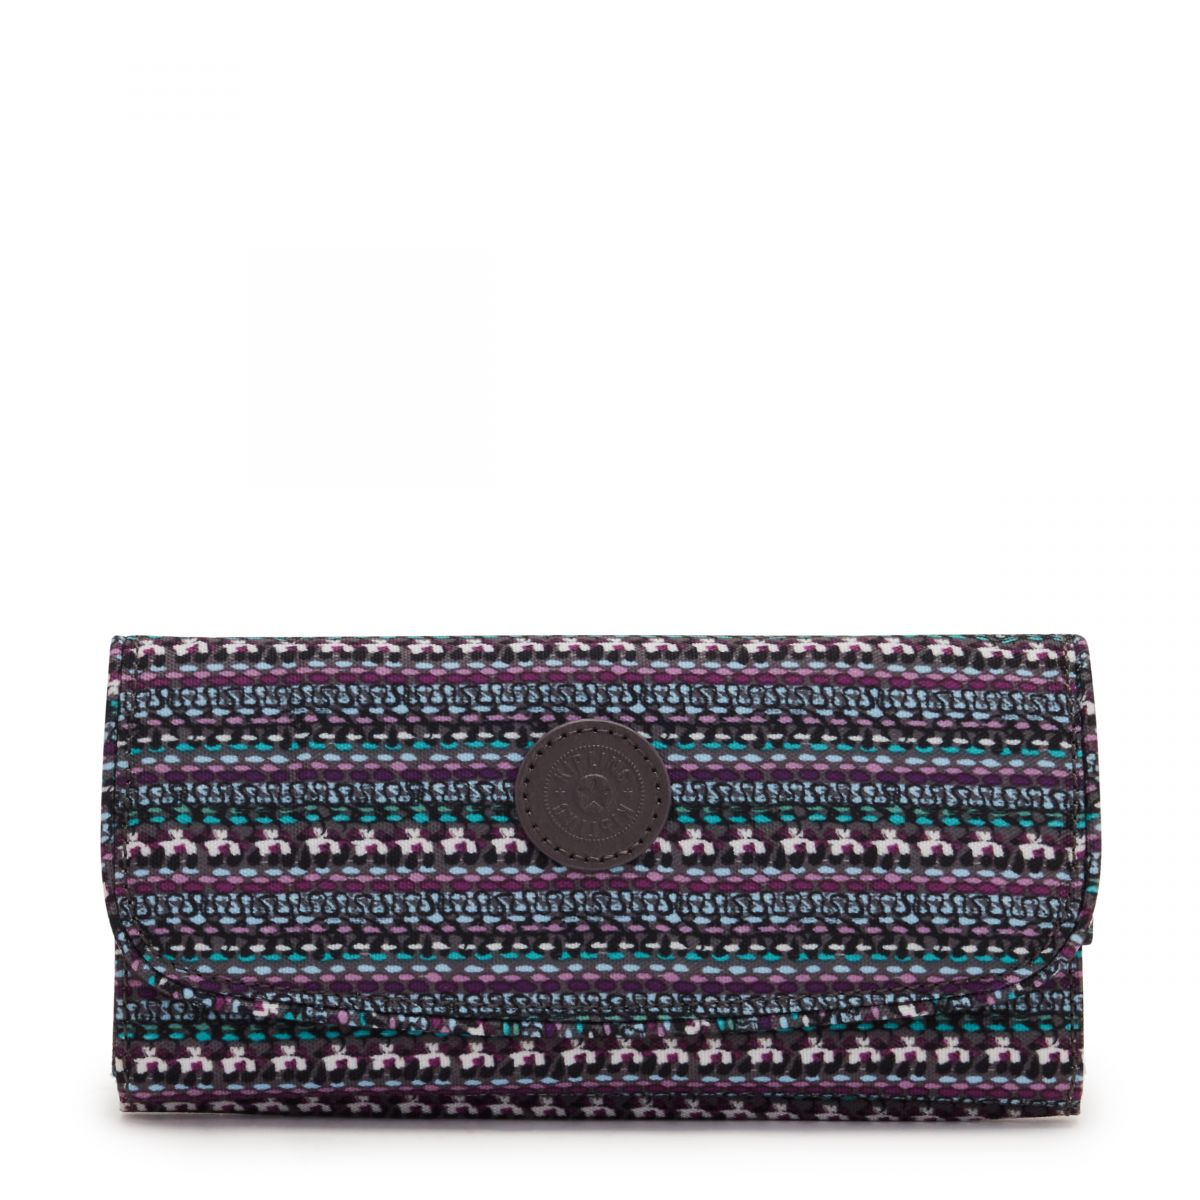 MONEY LAND ACCESSORIES by Kipling - Front view